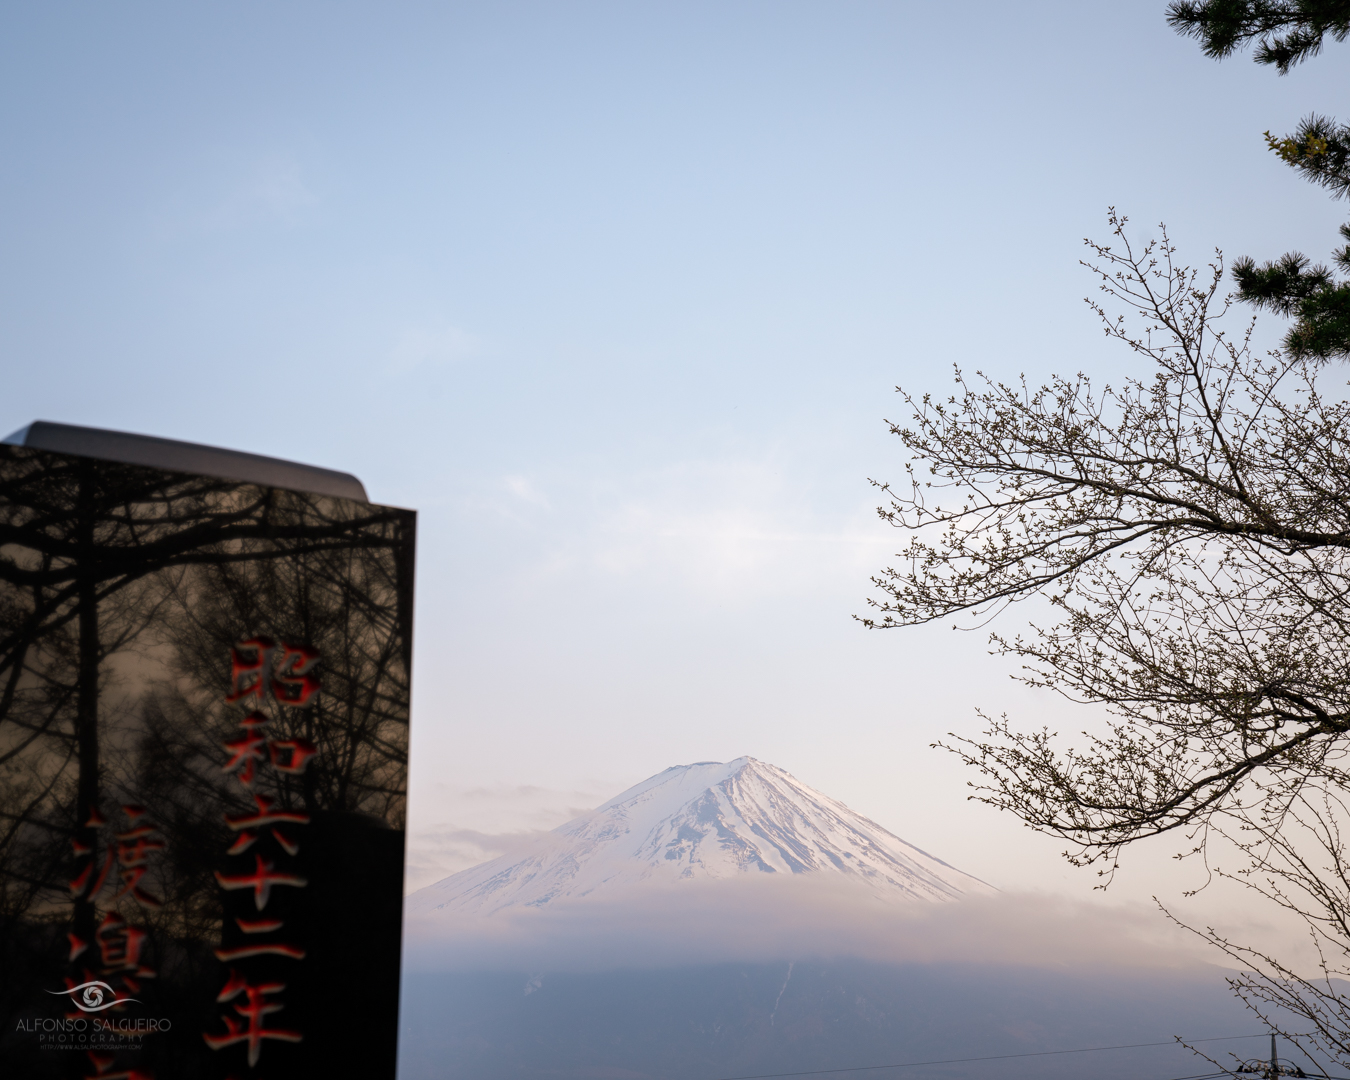 Mt. Fuji seen from a Japanese graveyard late in the evening